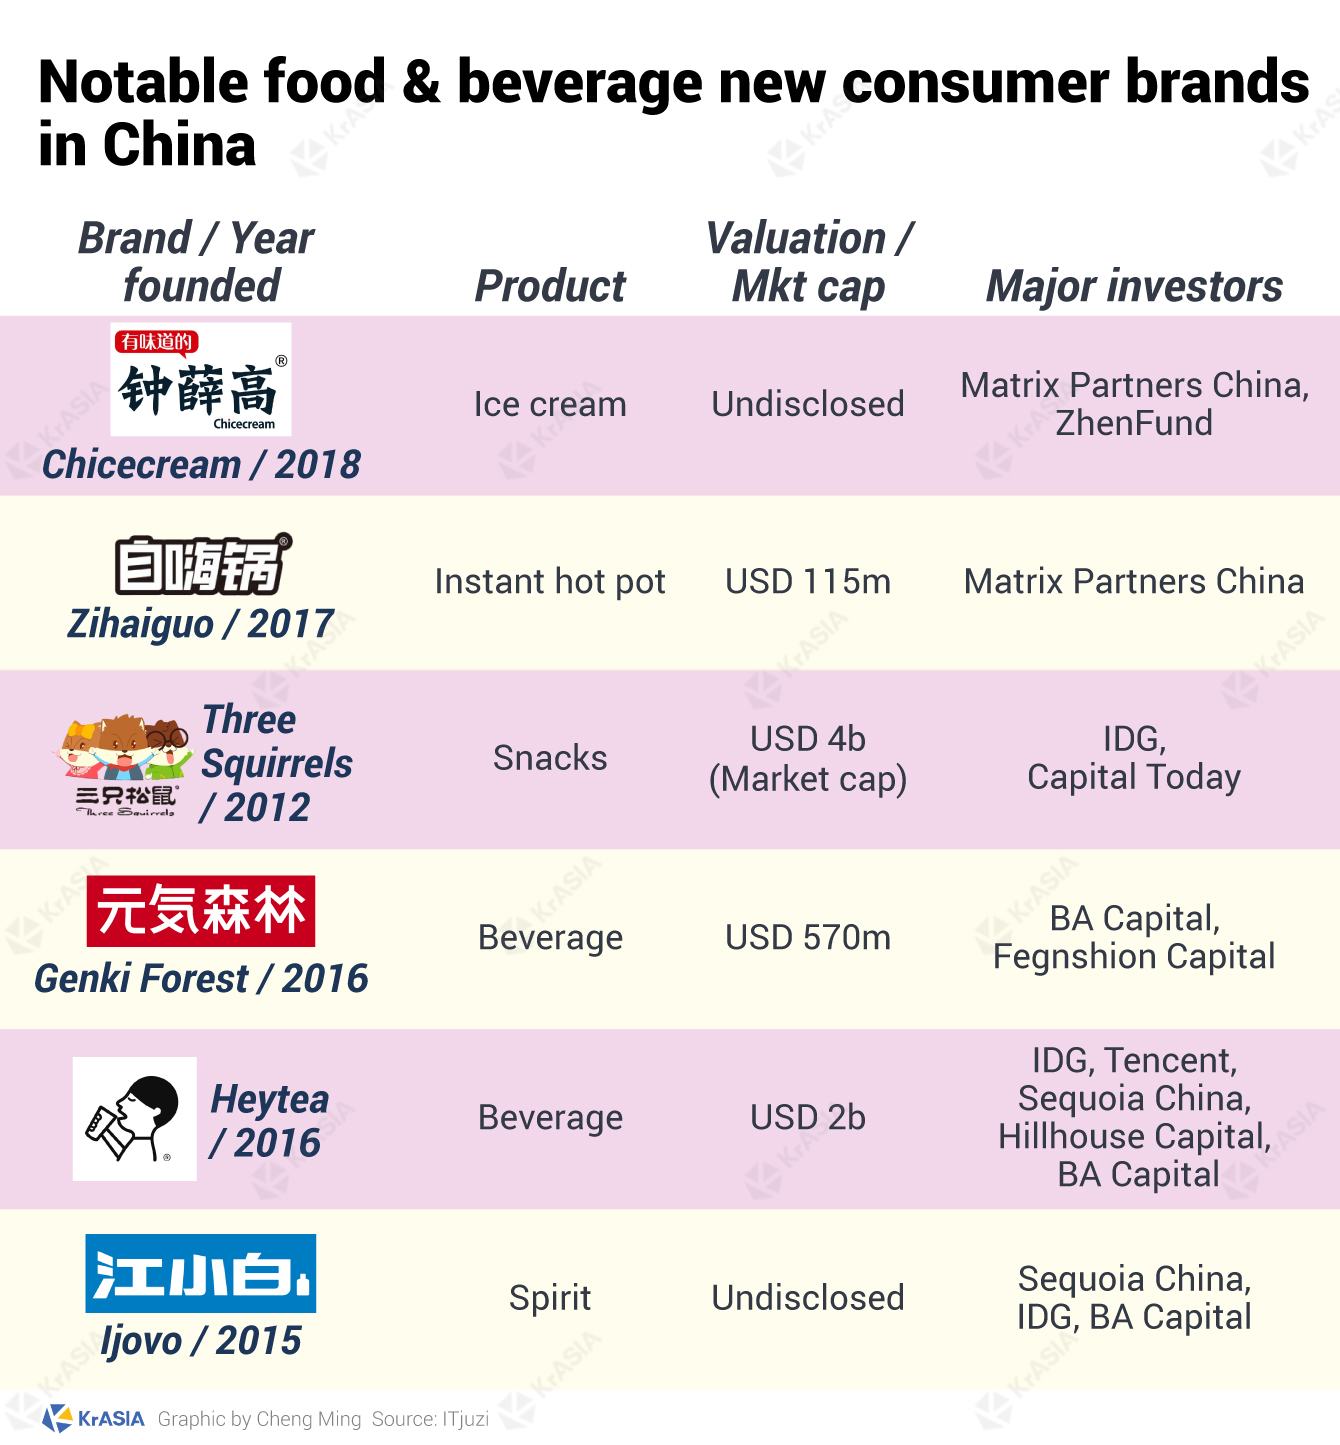 Notable food & beverage new consumer brands in China